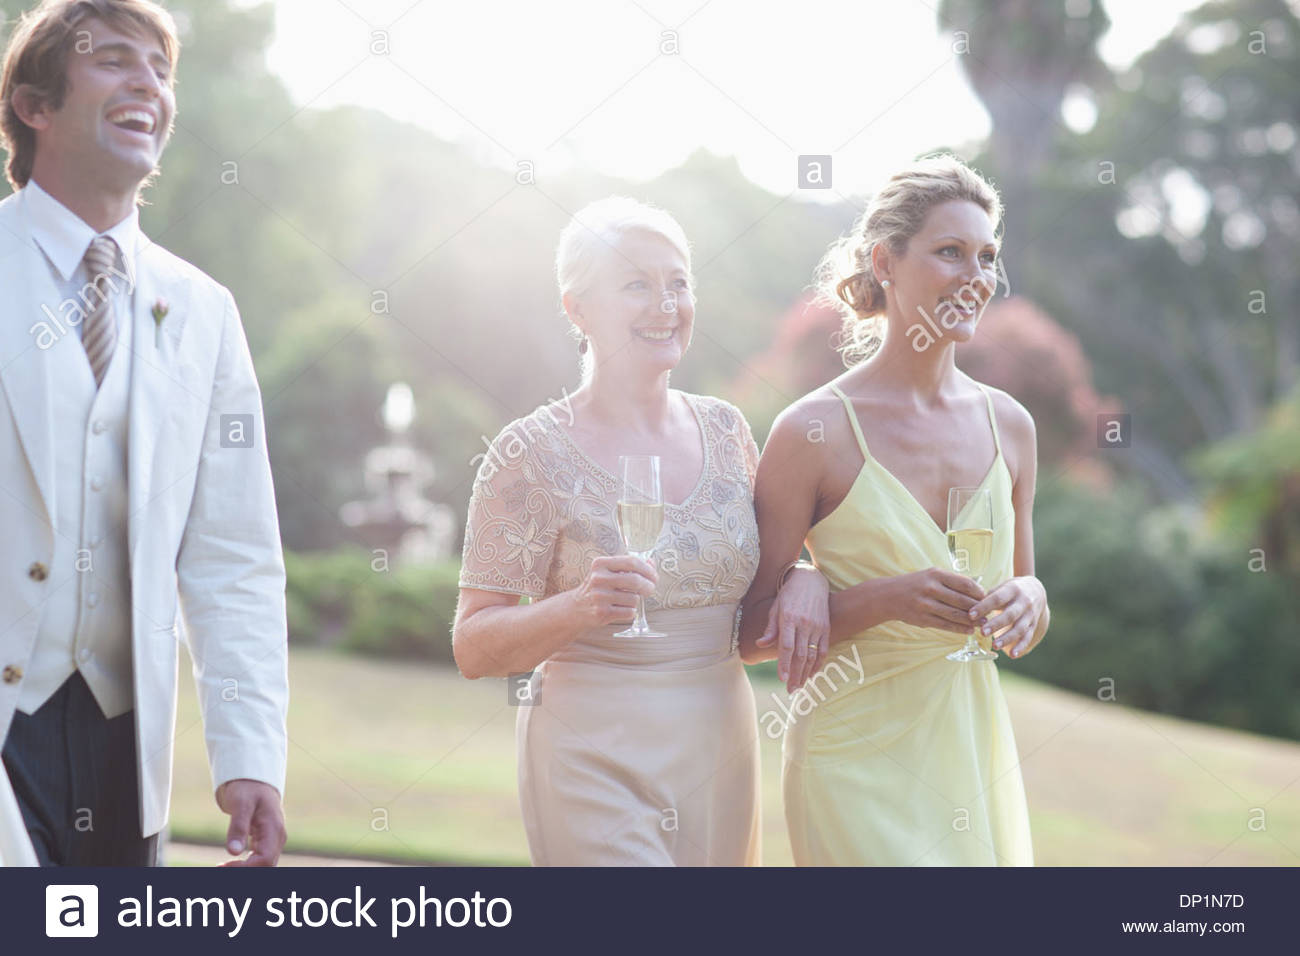 Wedding guests walking across lawn - Stock Image